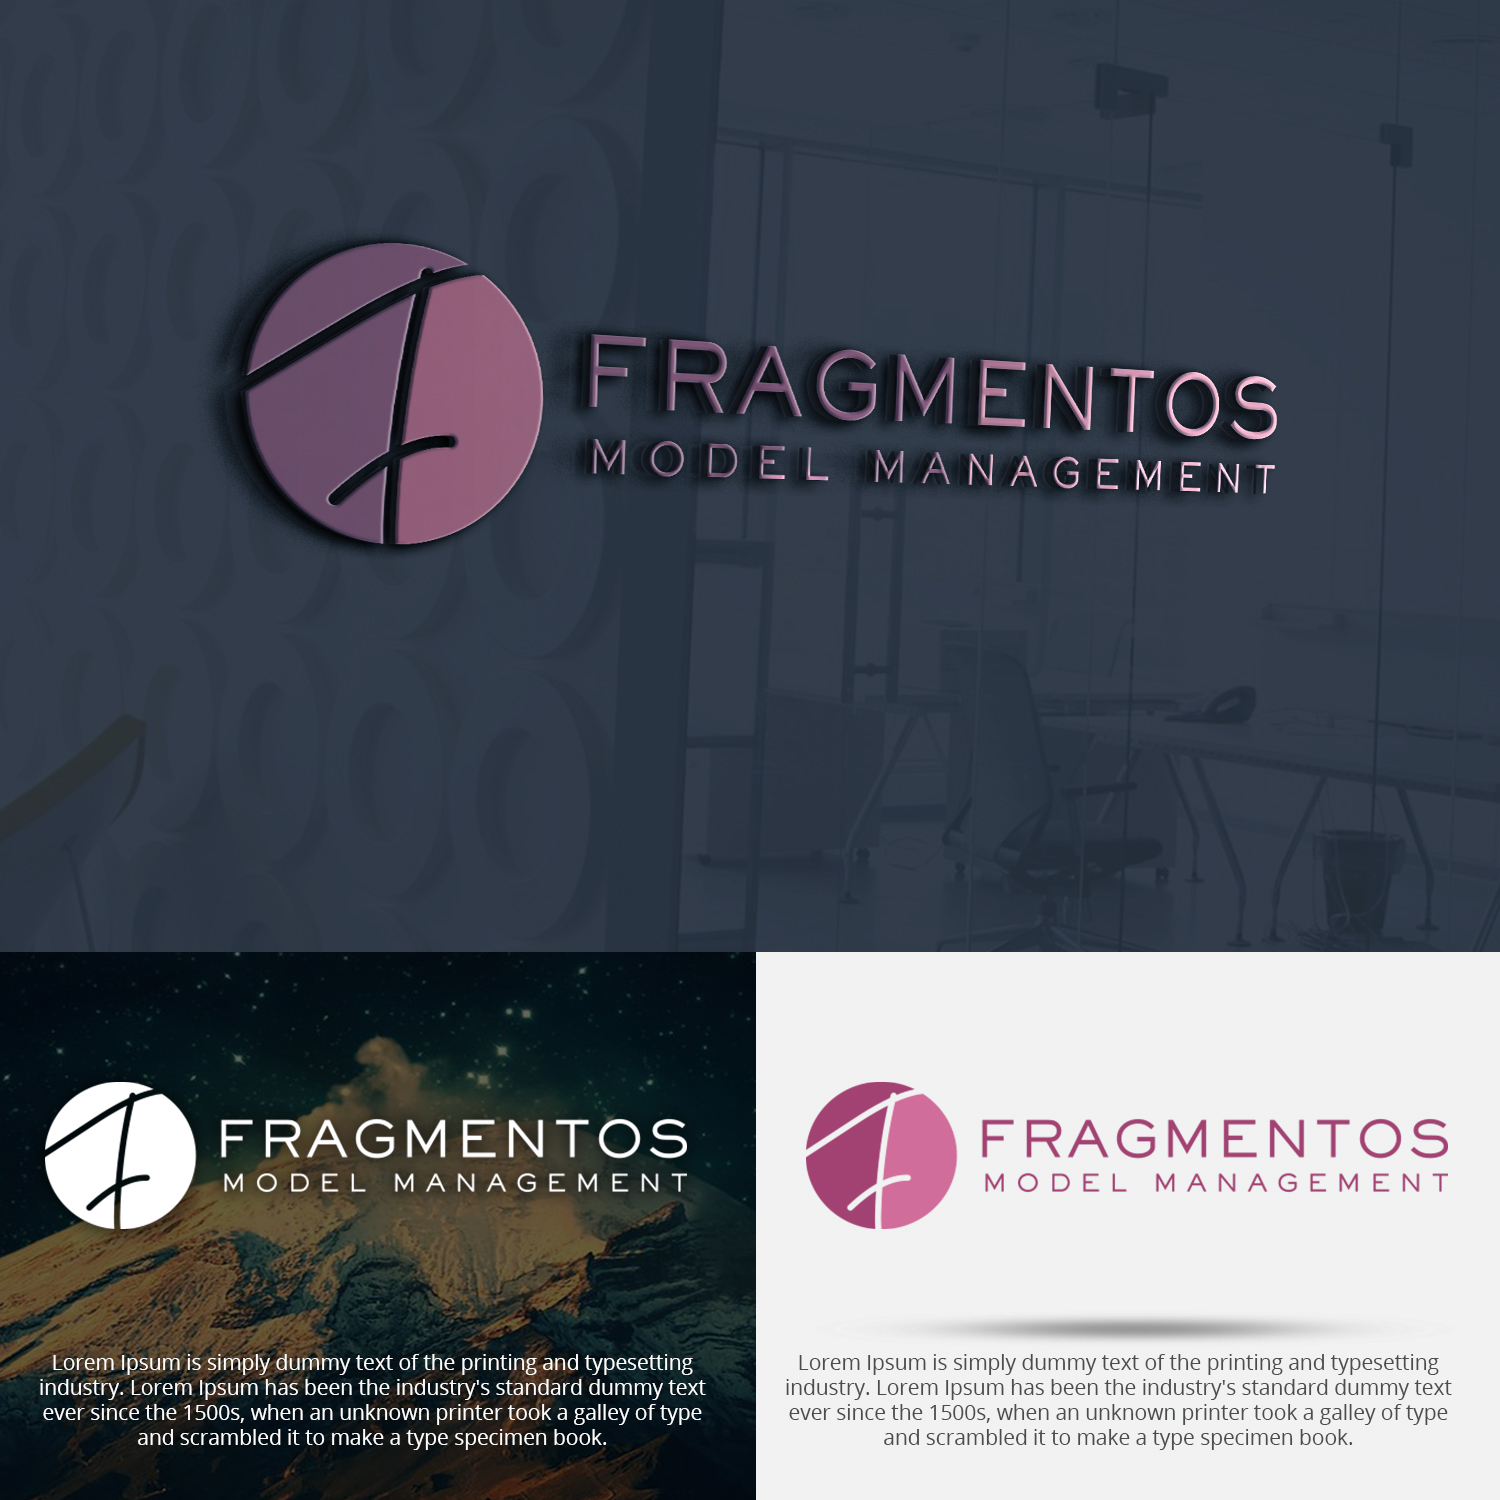 Elegant, Playful, Modeling Agency Logo Design for Fragmentos